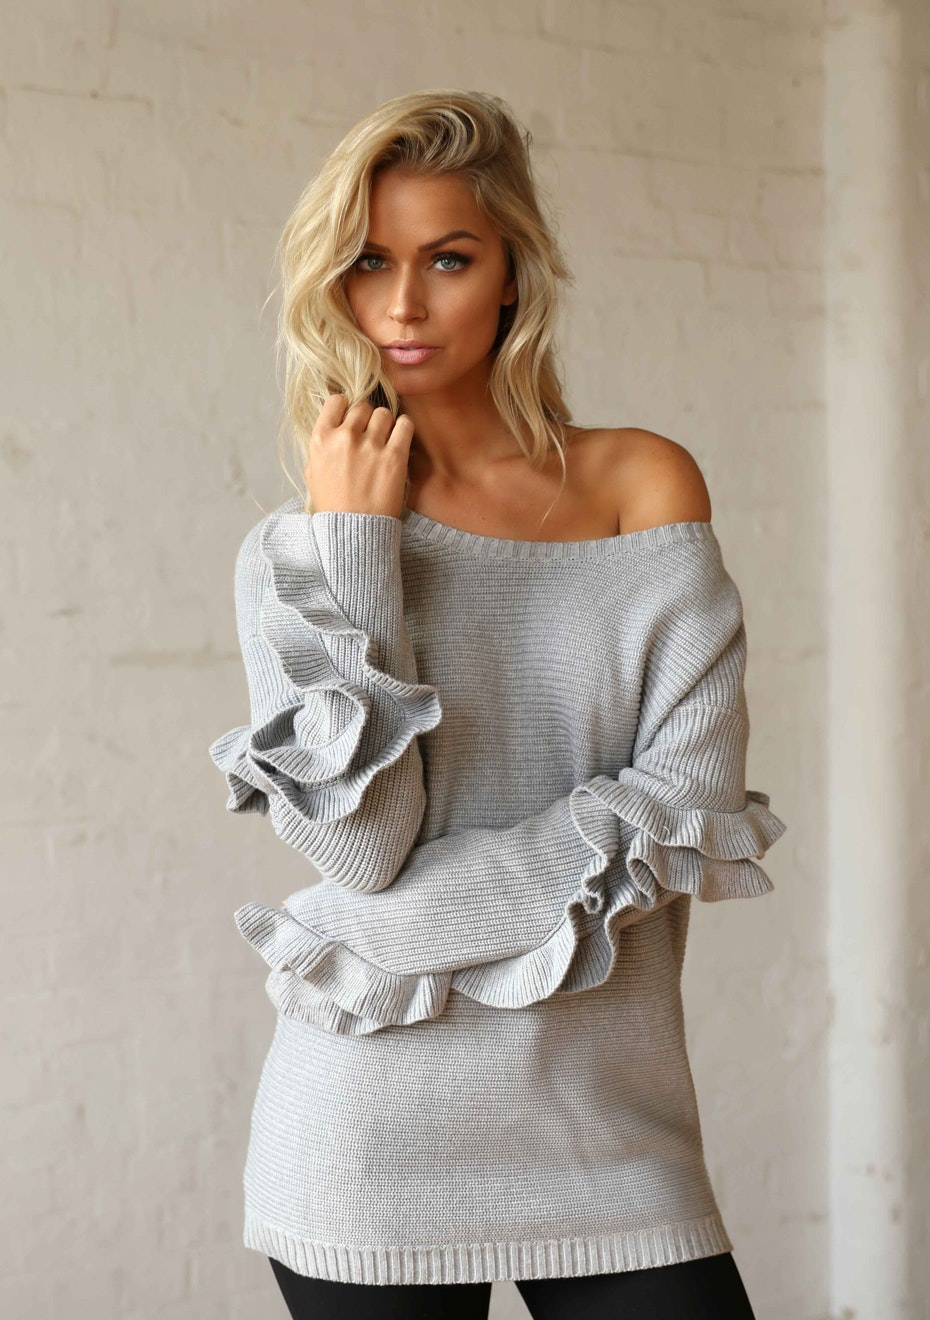 Madison - HADID RUFFLE KNIT - GREY